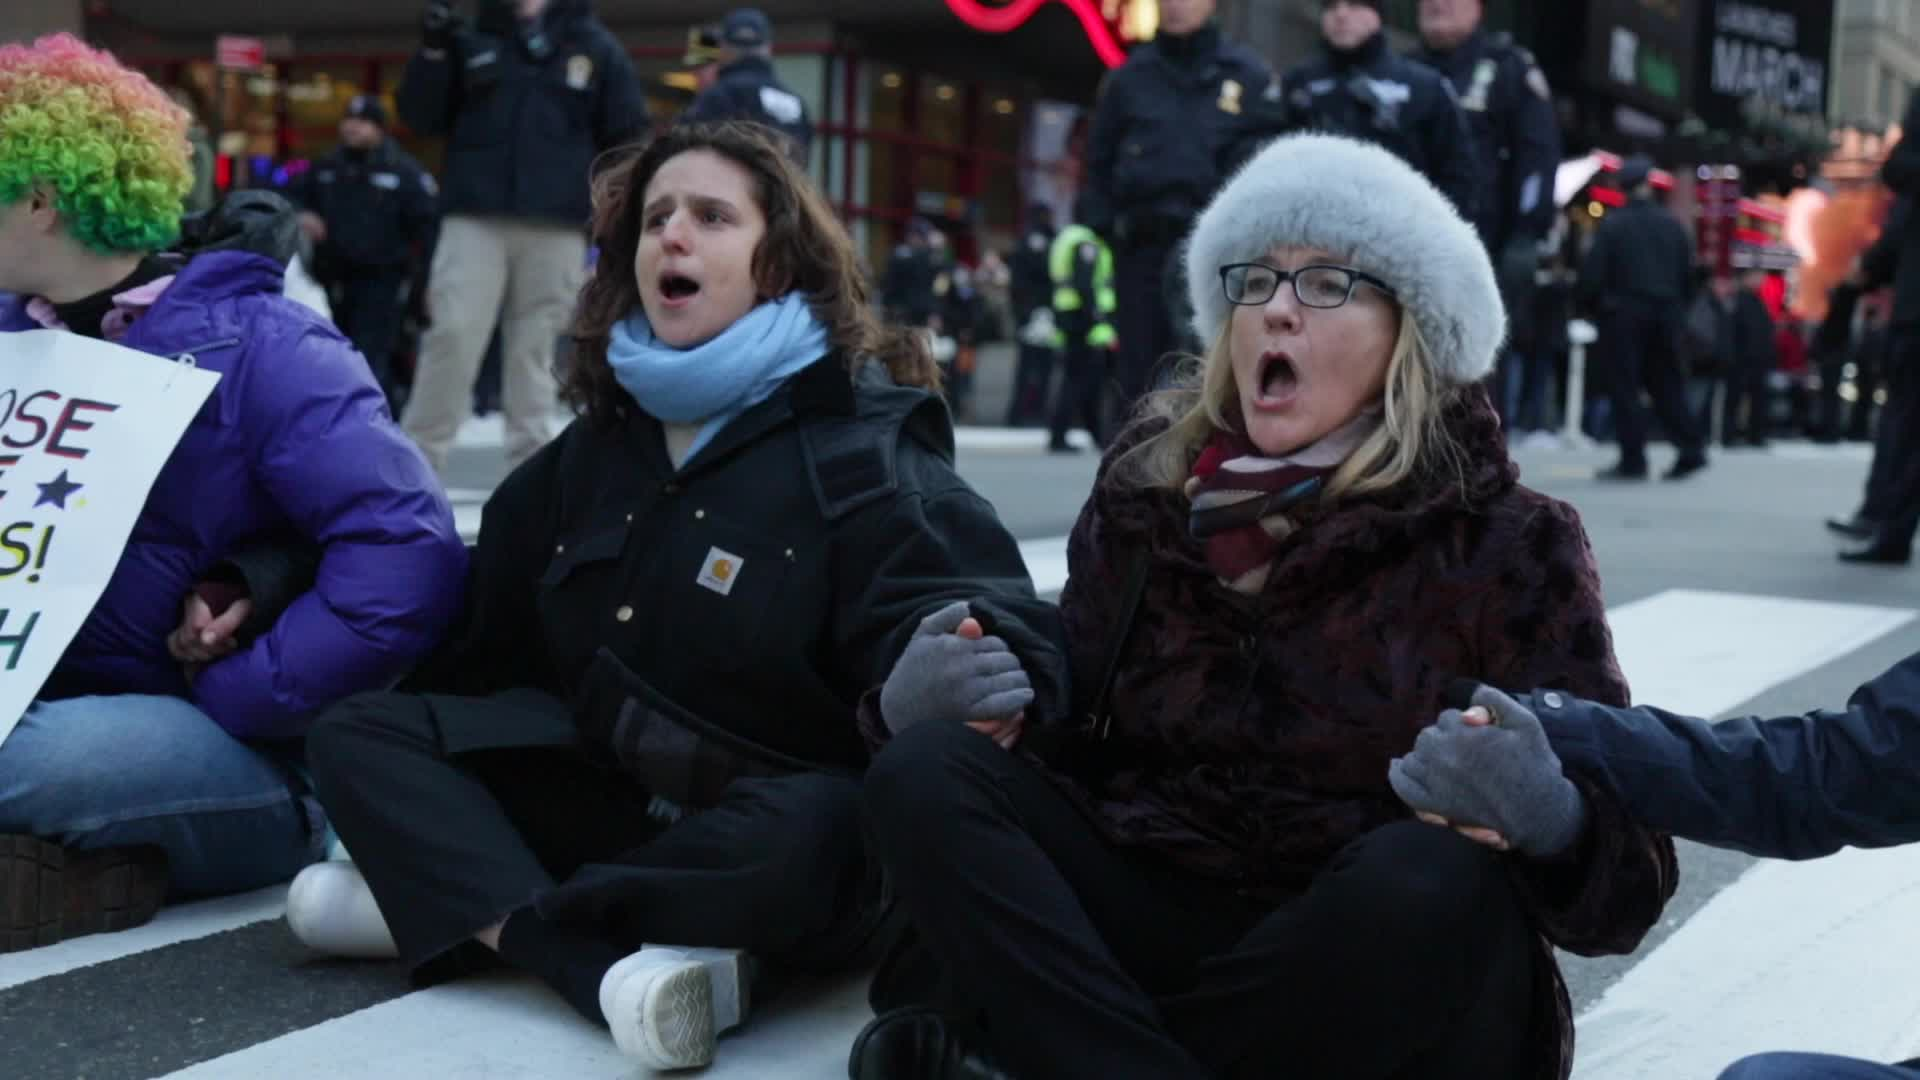 Protesters arrested at rally against ICE in Manhattan